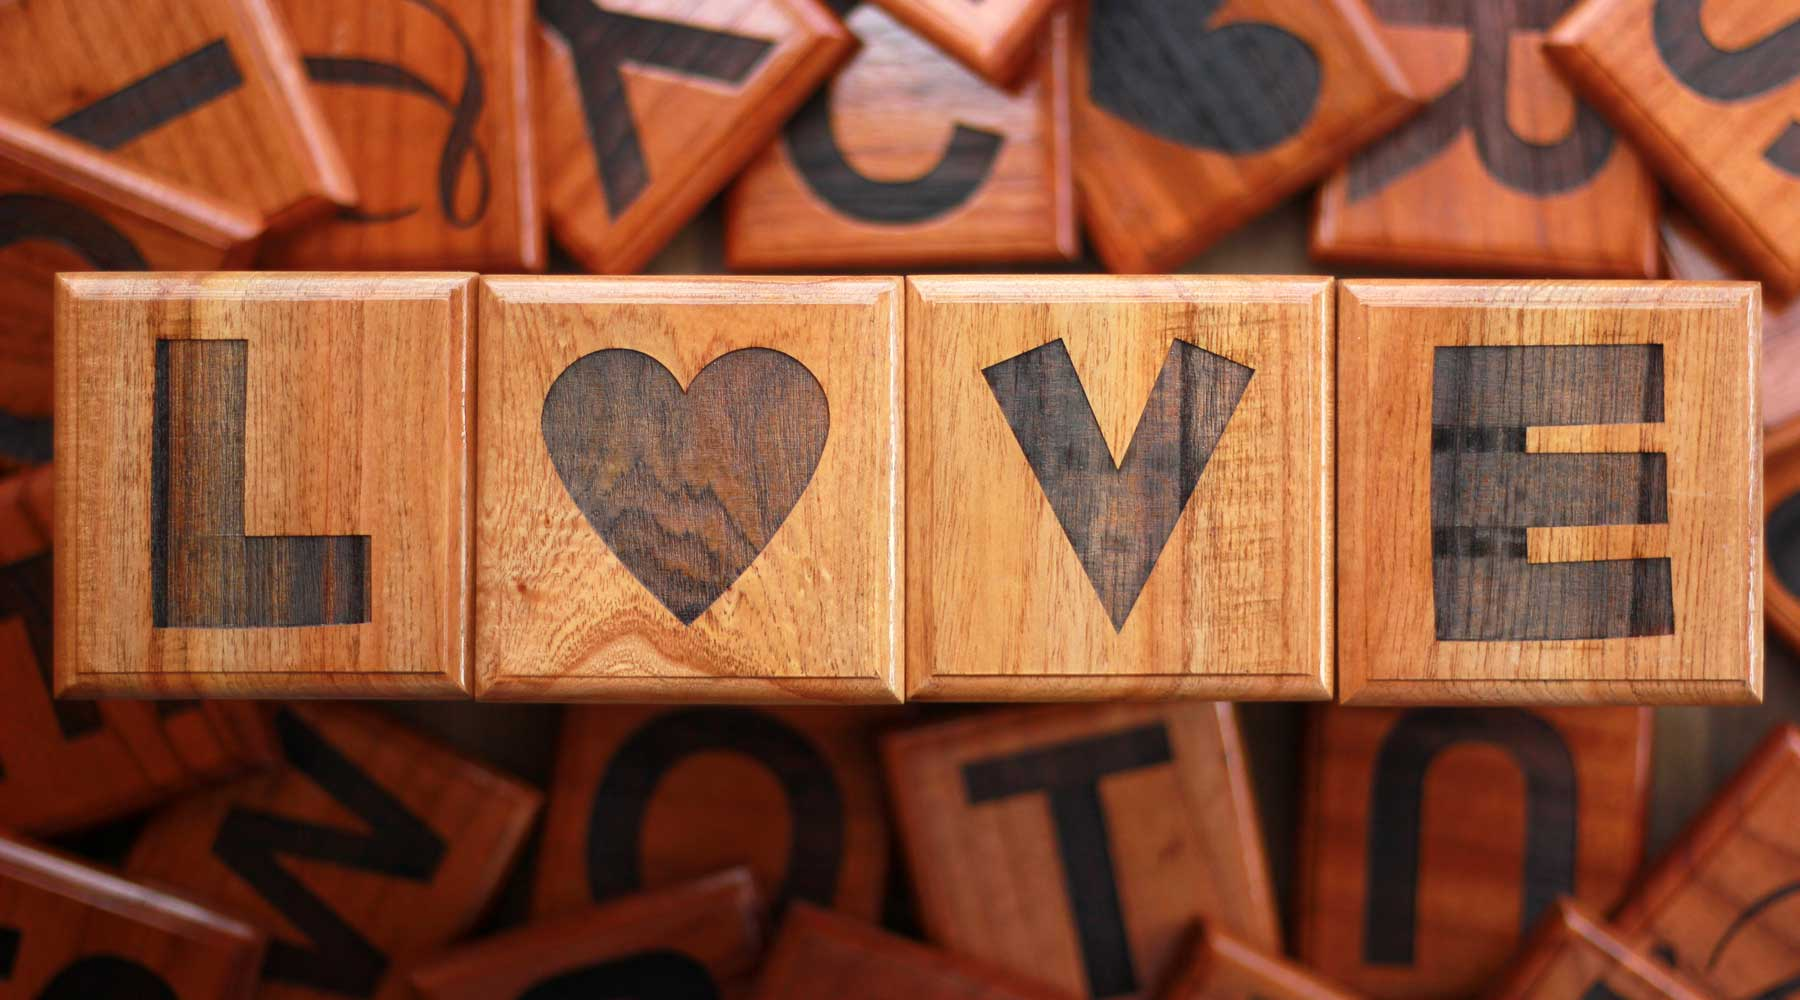 Love Wood Crossword - Letter Wall Decor - Tiles With Words On Them - Love Gifts - Crossword Puzzles - Cute Couple Gifts - Woodgeek - Woodgeekstore